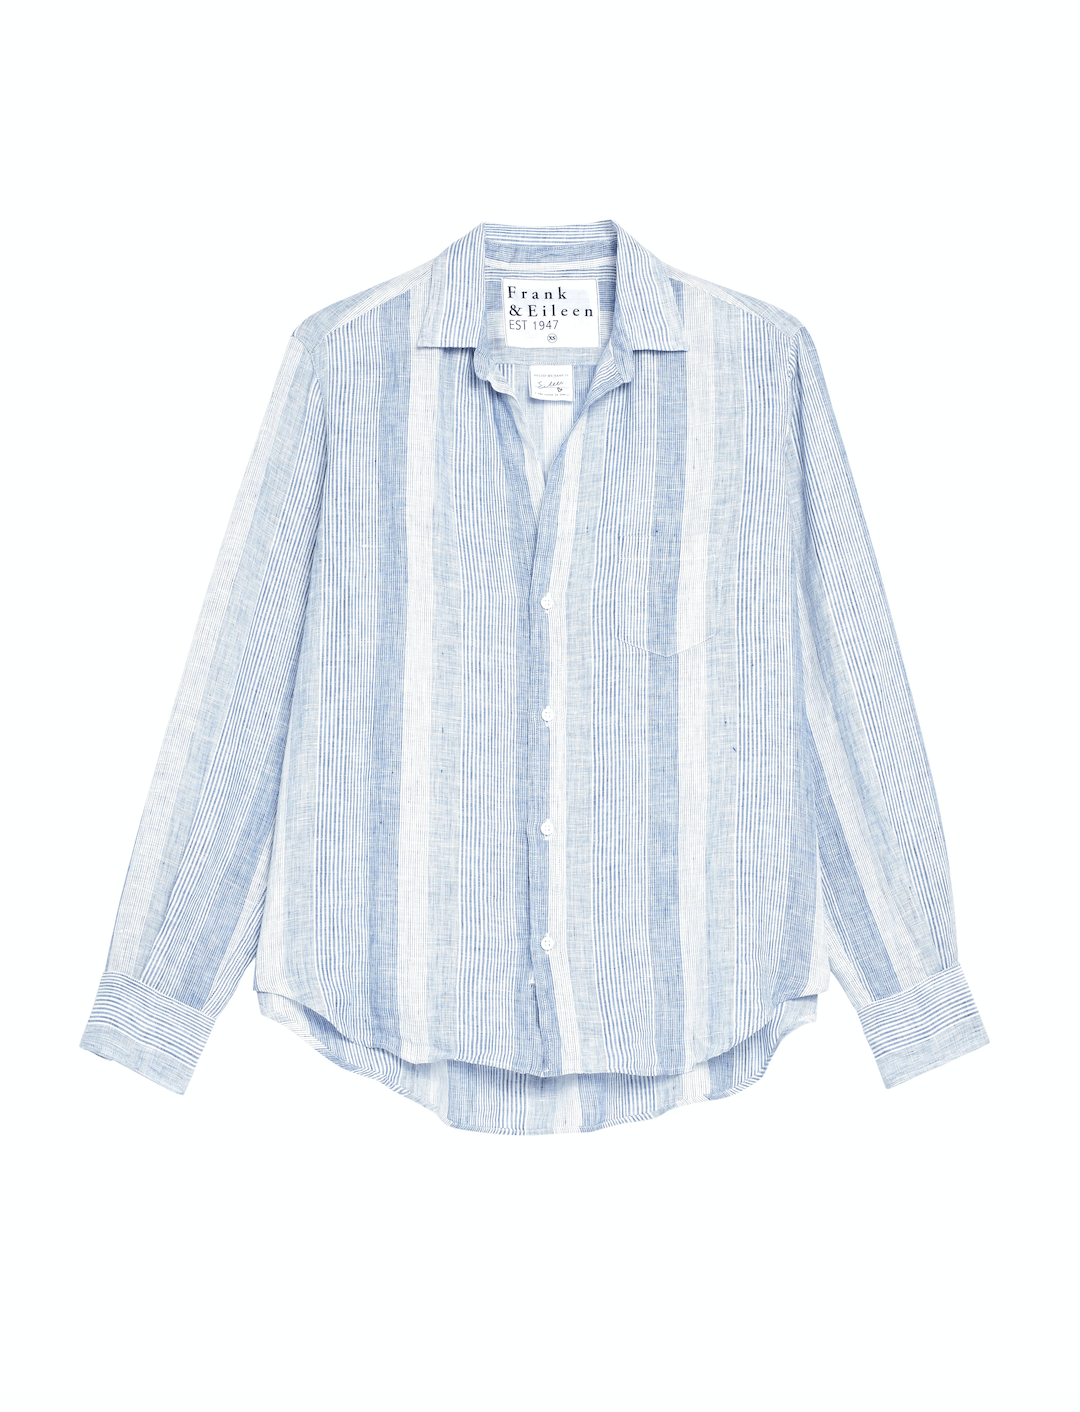 Frank & Eileen Clothing Multi-Blue Stripe / XS Elieen Relaxed Button Down in Multi-Blue Stripe